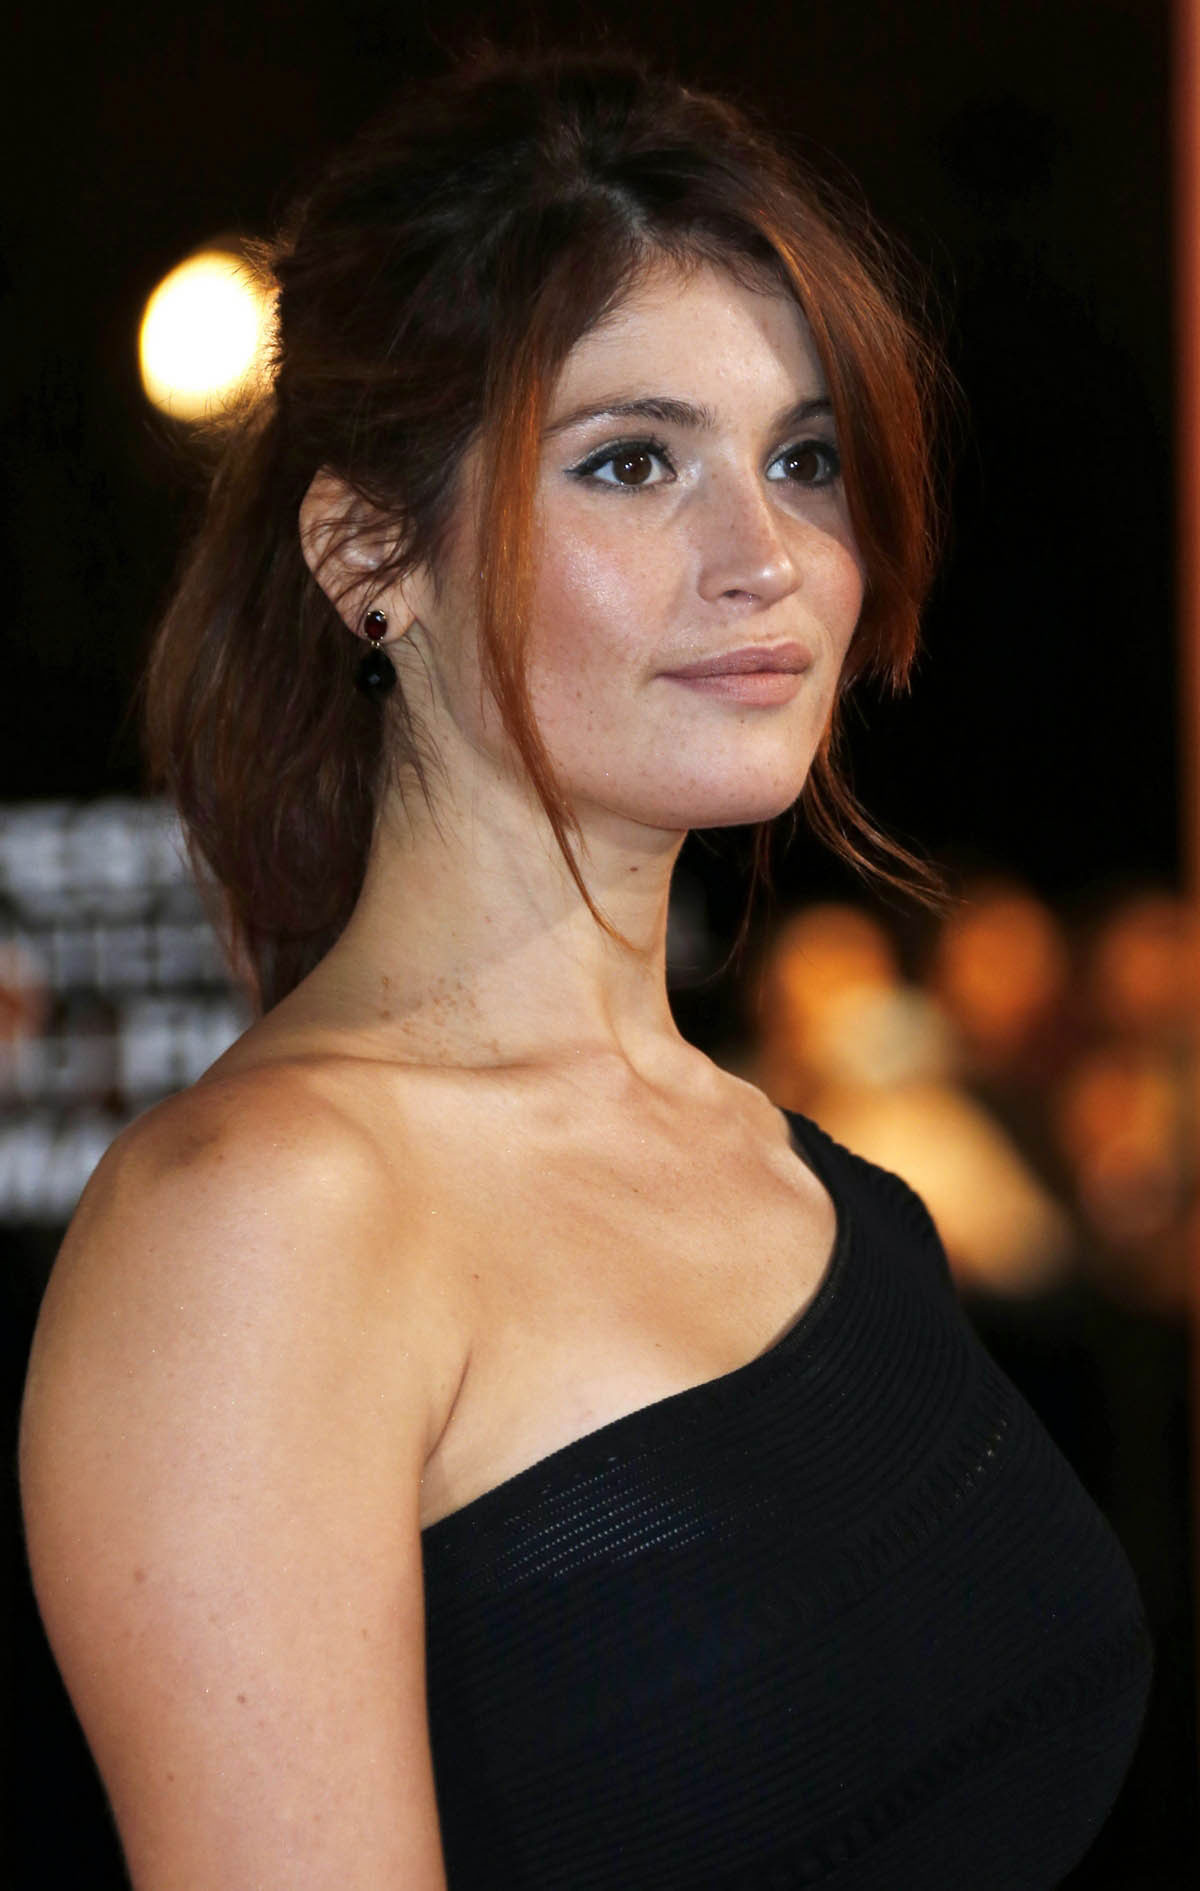 Gemma christina arterton hands